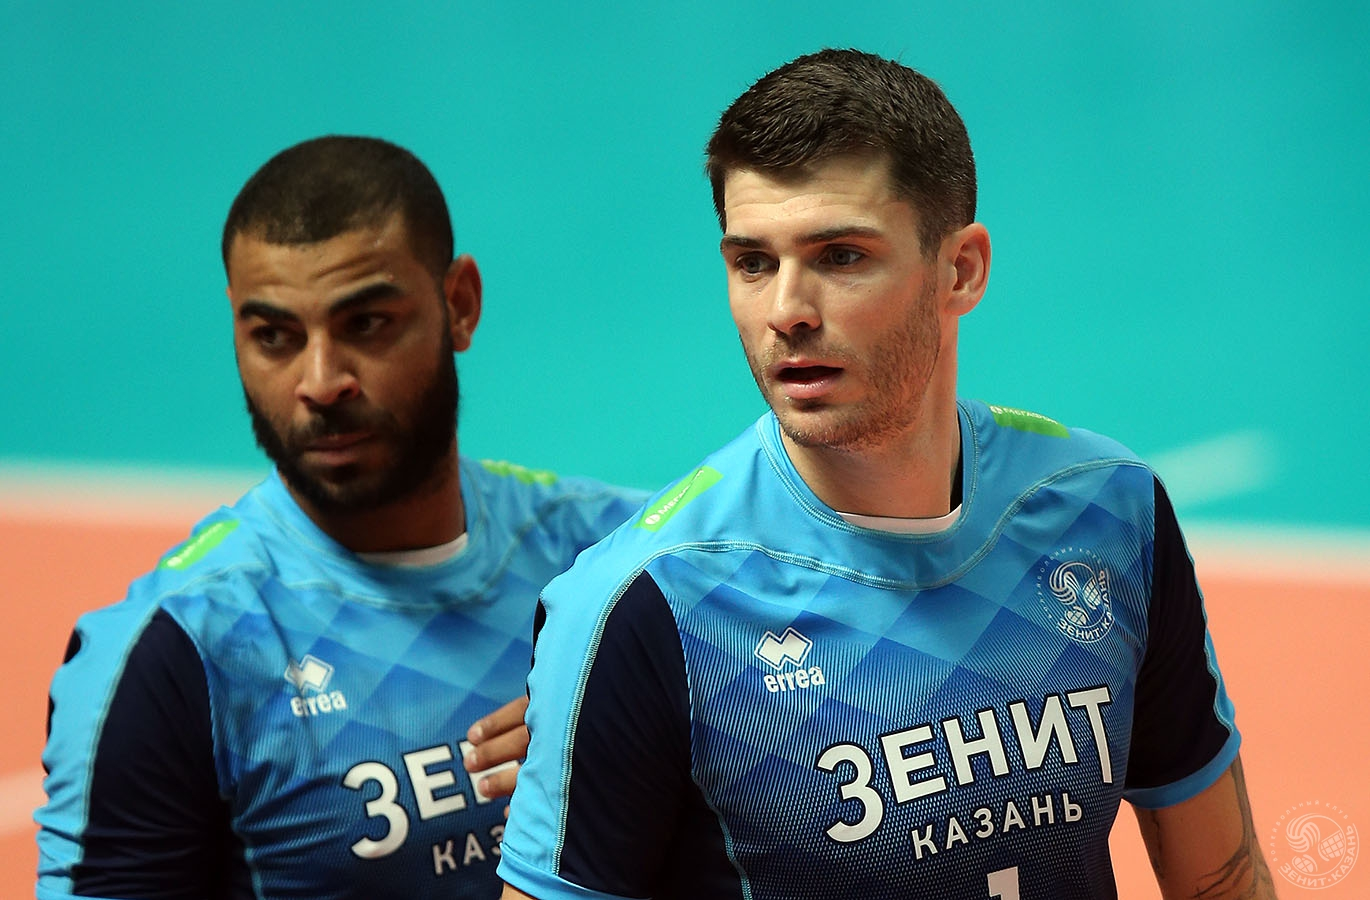 524226fb8baf Earvin Ngapeth And Matt Anderson Share The Court For The First Time As  Zenit Kazan Beats Kemerovo 3-1